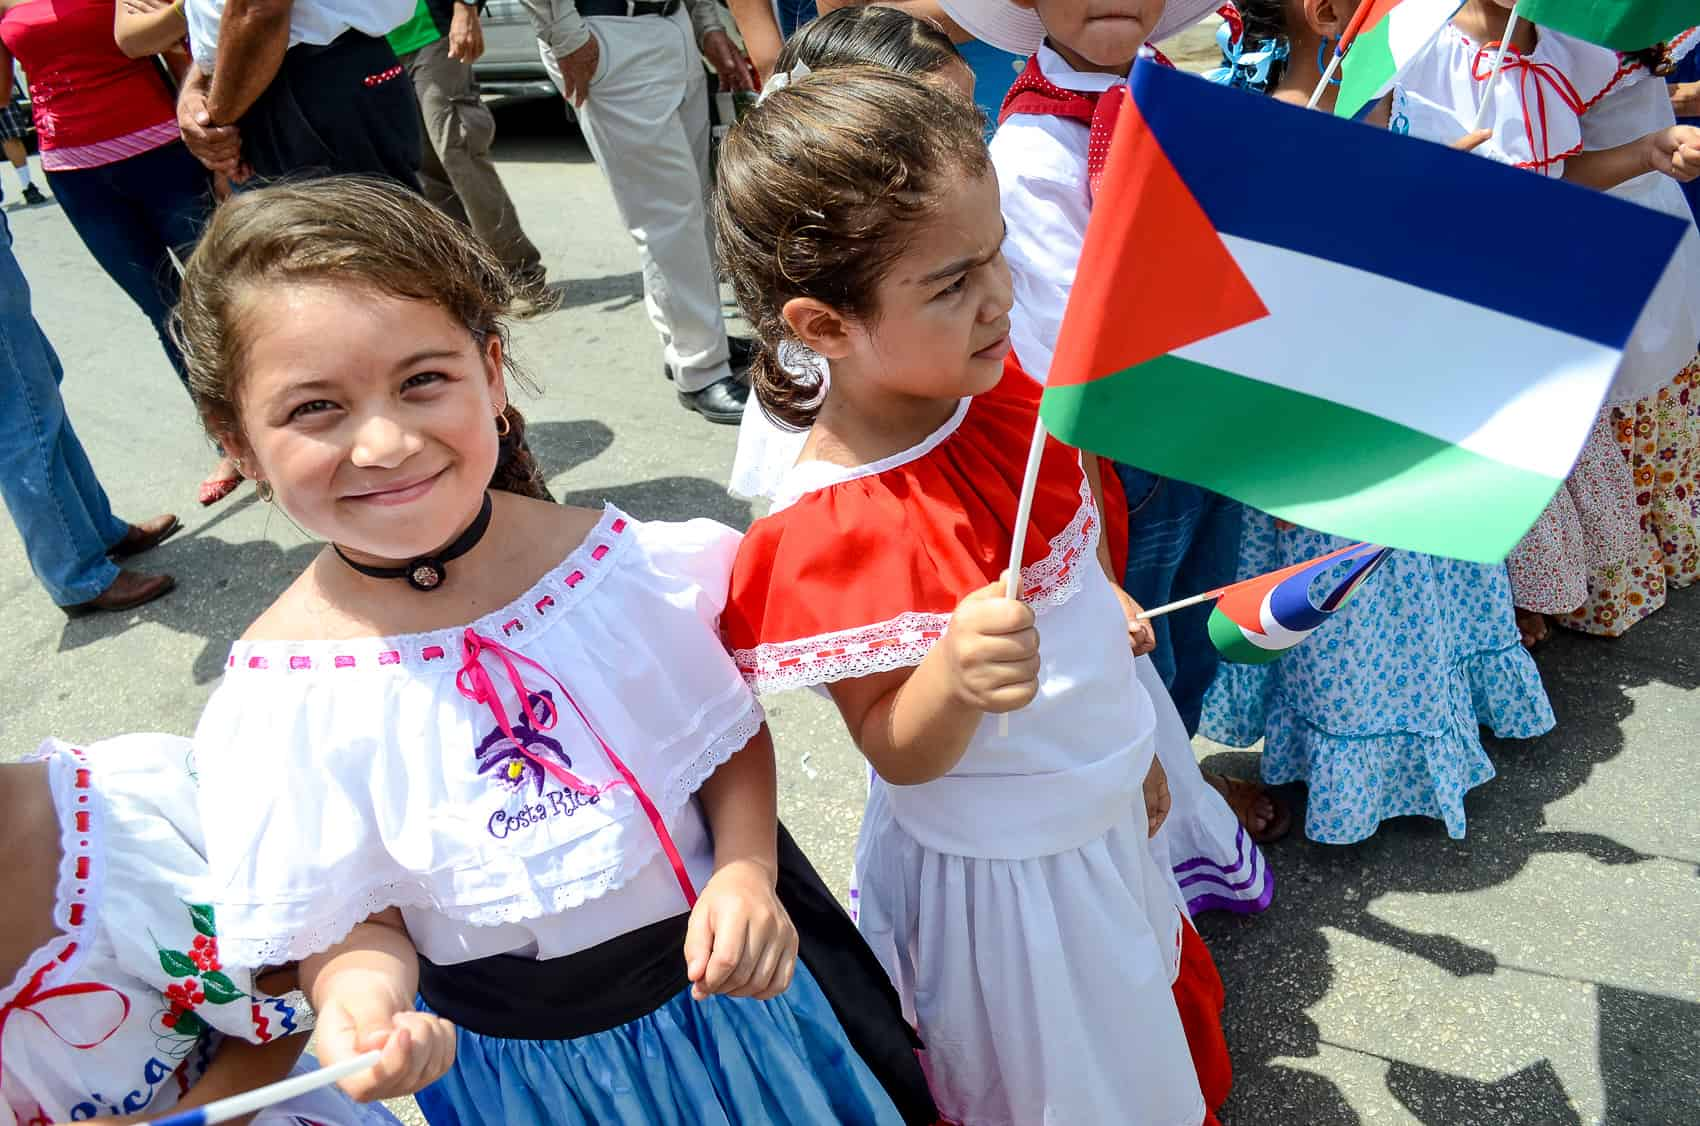 Children in traditional dress wave the Guanacaste flag at the 190th anniversary of the annexation of the Partido de Nicoya by Costa Rica, 2014.